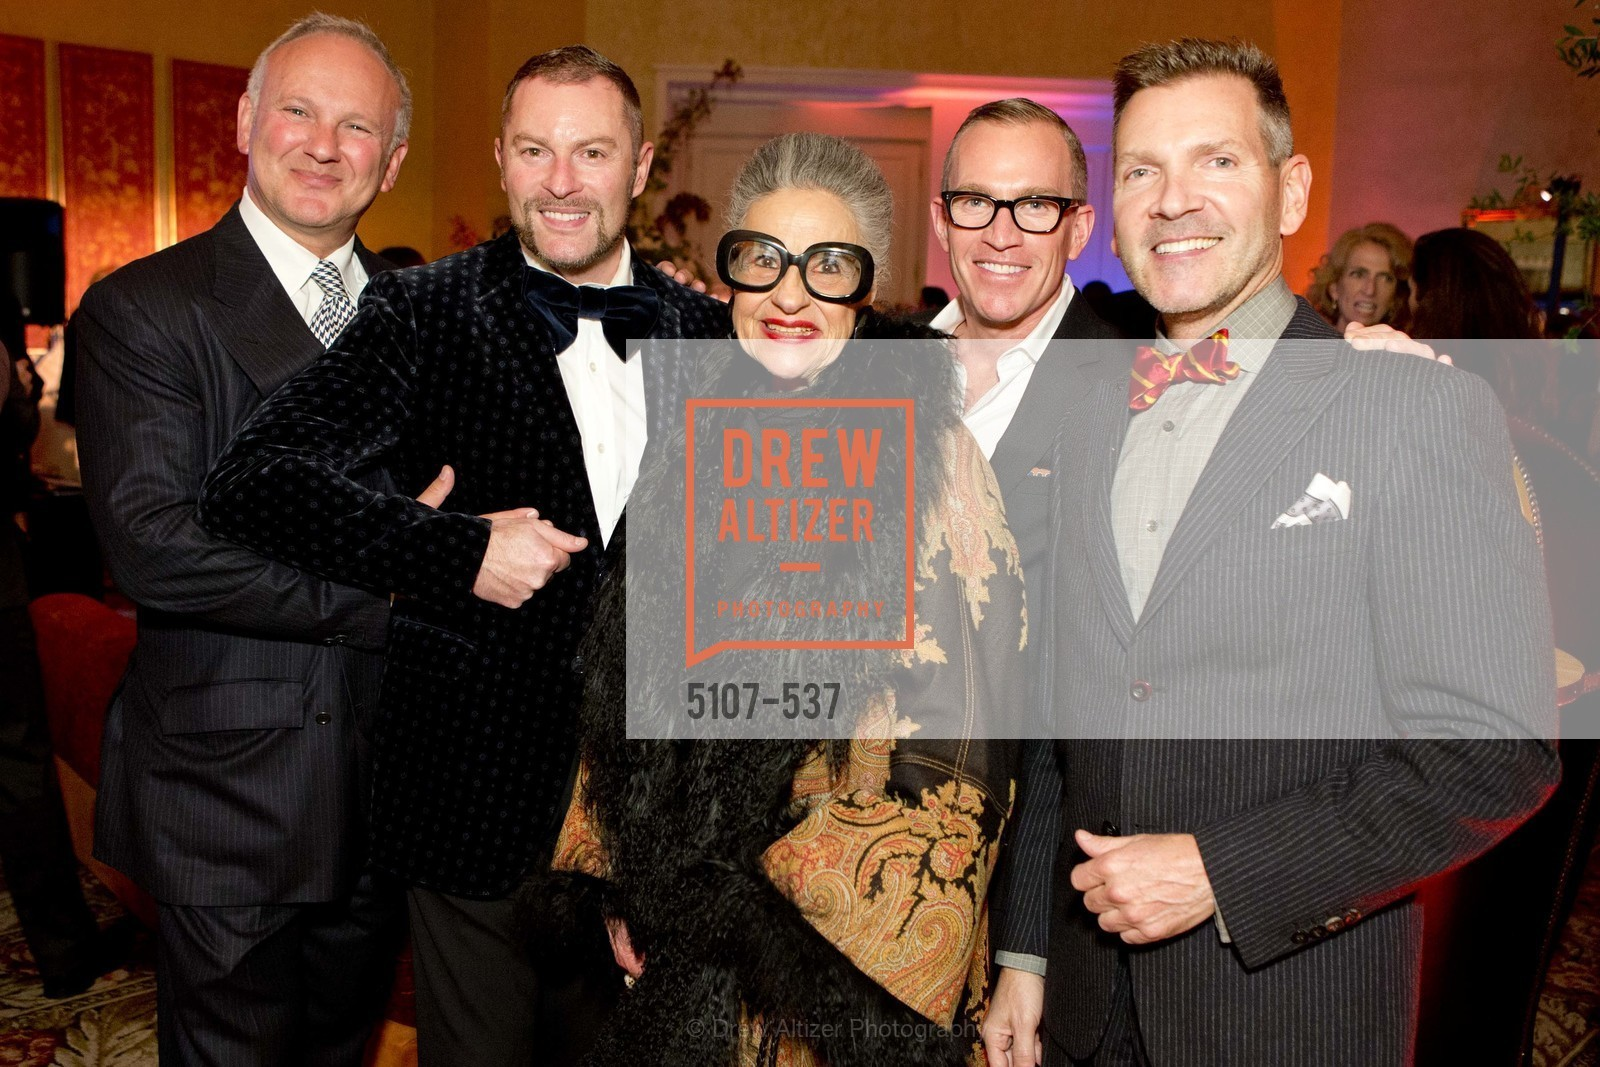 Brian Kessler, Thierry Buisson, Joy Venturini Bianchi, Gene Ogden, Eric Petsinger, TOP OF THE MARK'S 75TH Anniversary Party, US, November 6th, 2014,Drew Altizer, Drew Altizer Photography, full-service agency, private events, San Francisco photographer, photographer california